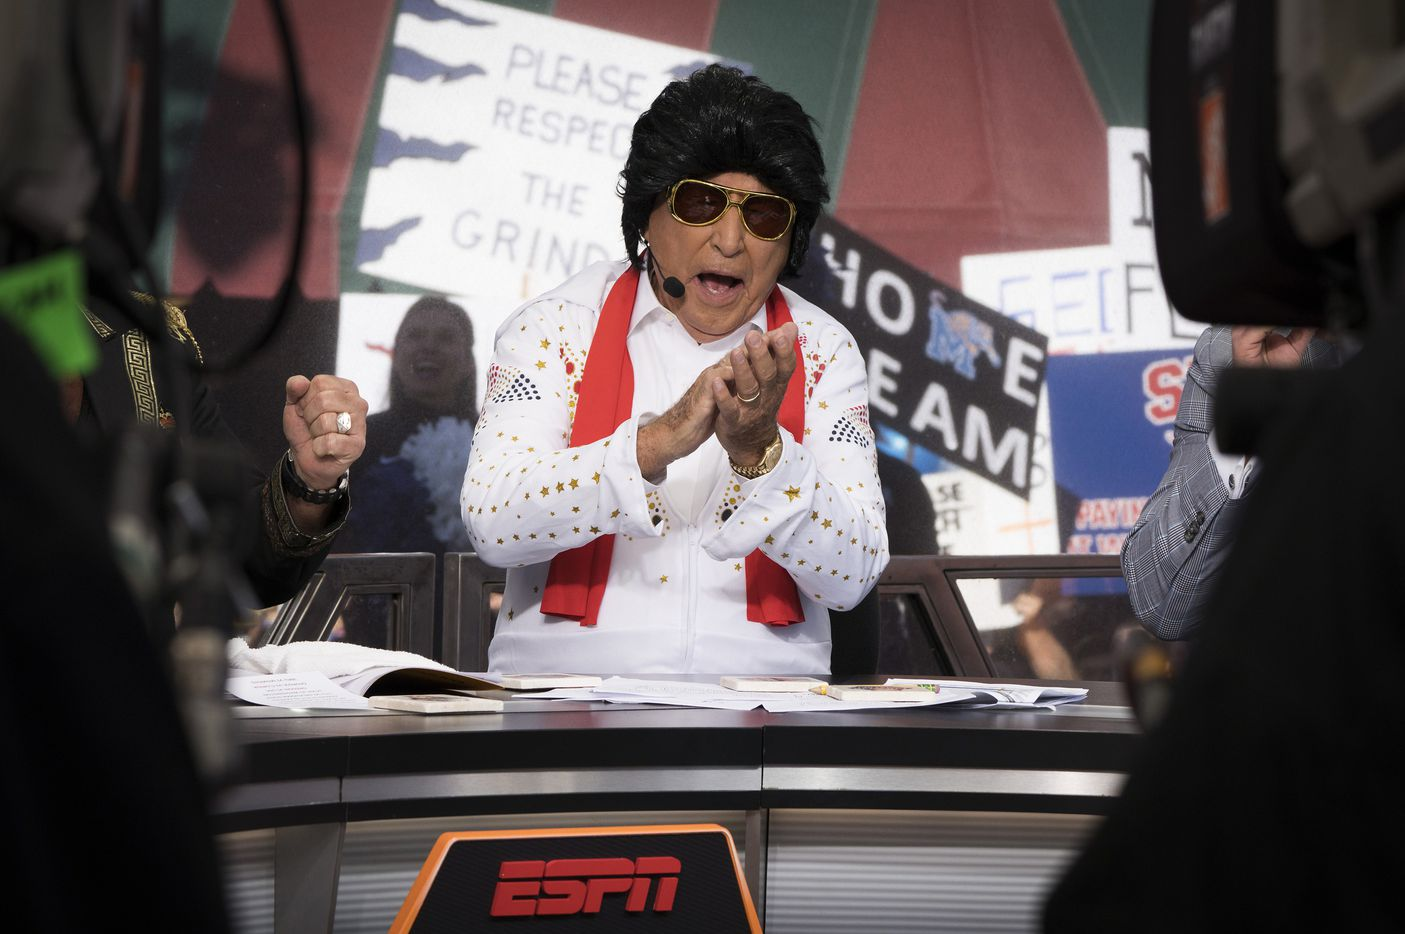 Lee Corso wears an Elvis costume on the set during ESPN College GameDay on Beale Street before an NCAA football game  between Memphis and SMU on Saturday, Nov. 2, 2019, in Memphis, Tenn.